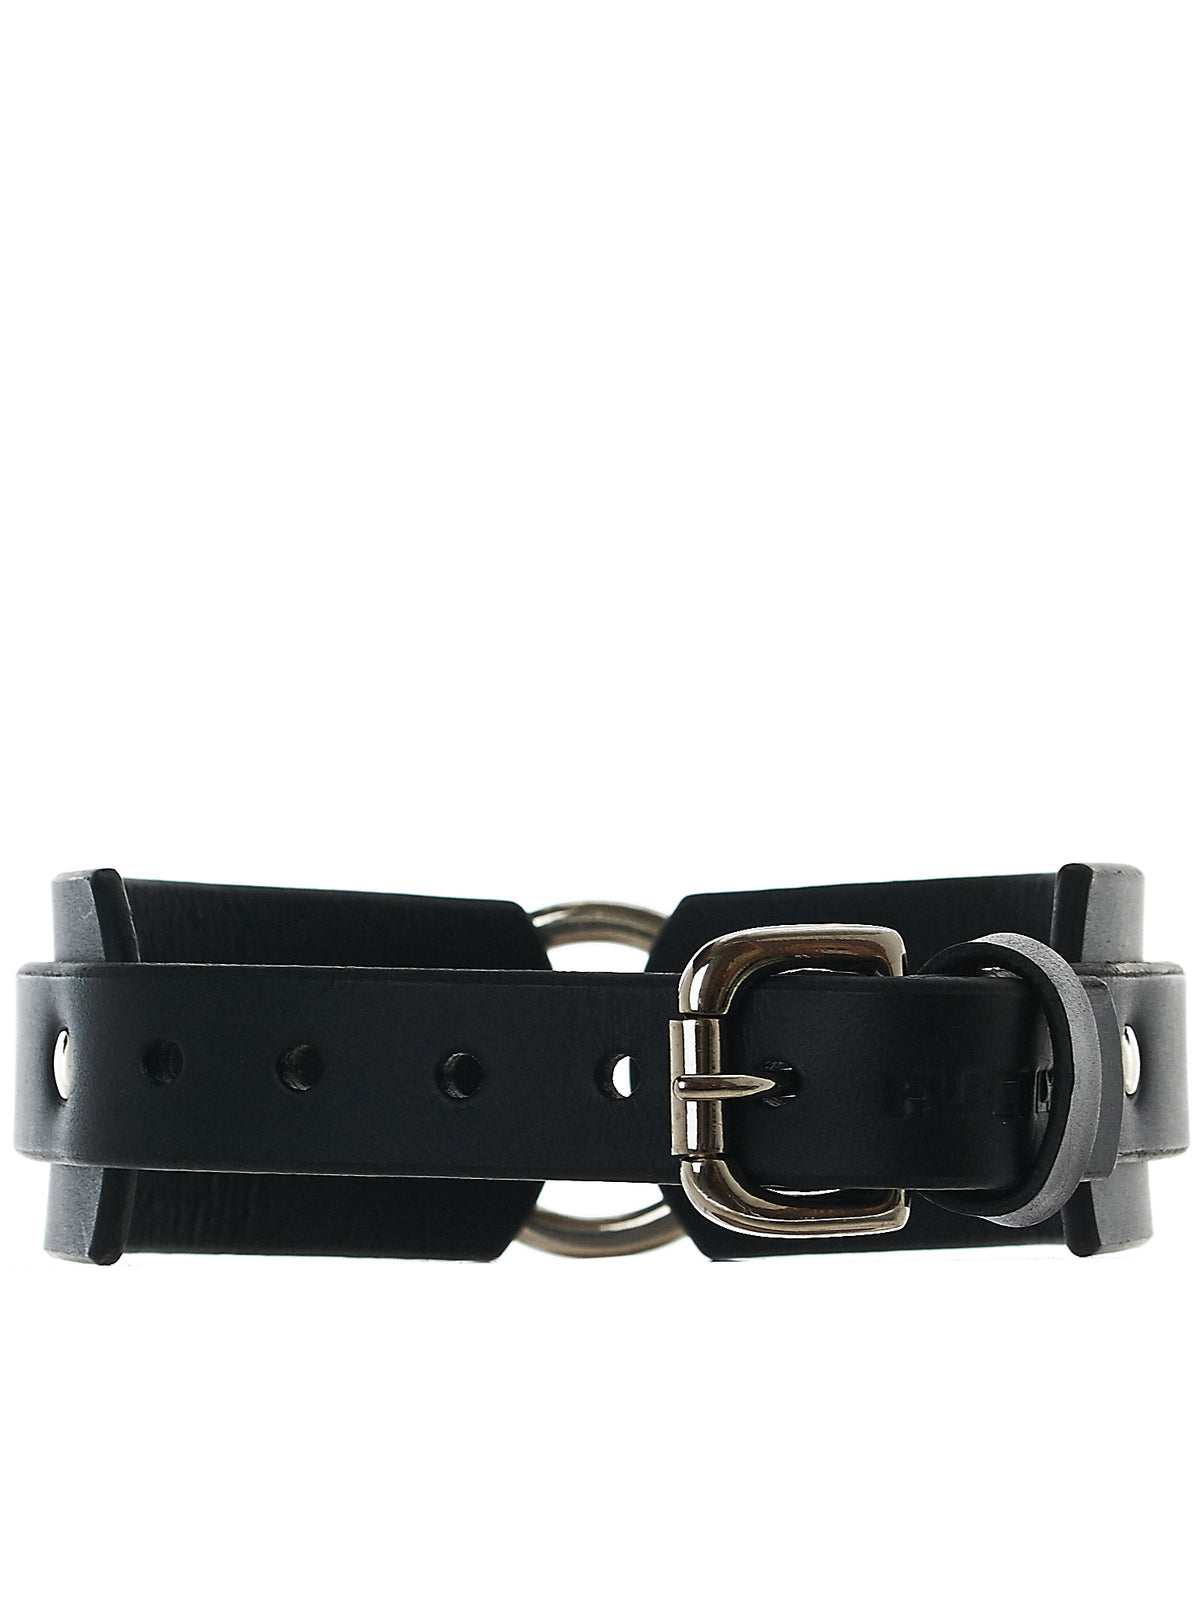 Structural Buckled Choker (AW17-CLR-CHLOR-BLACK)